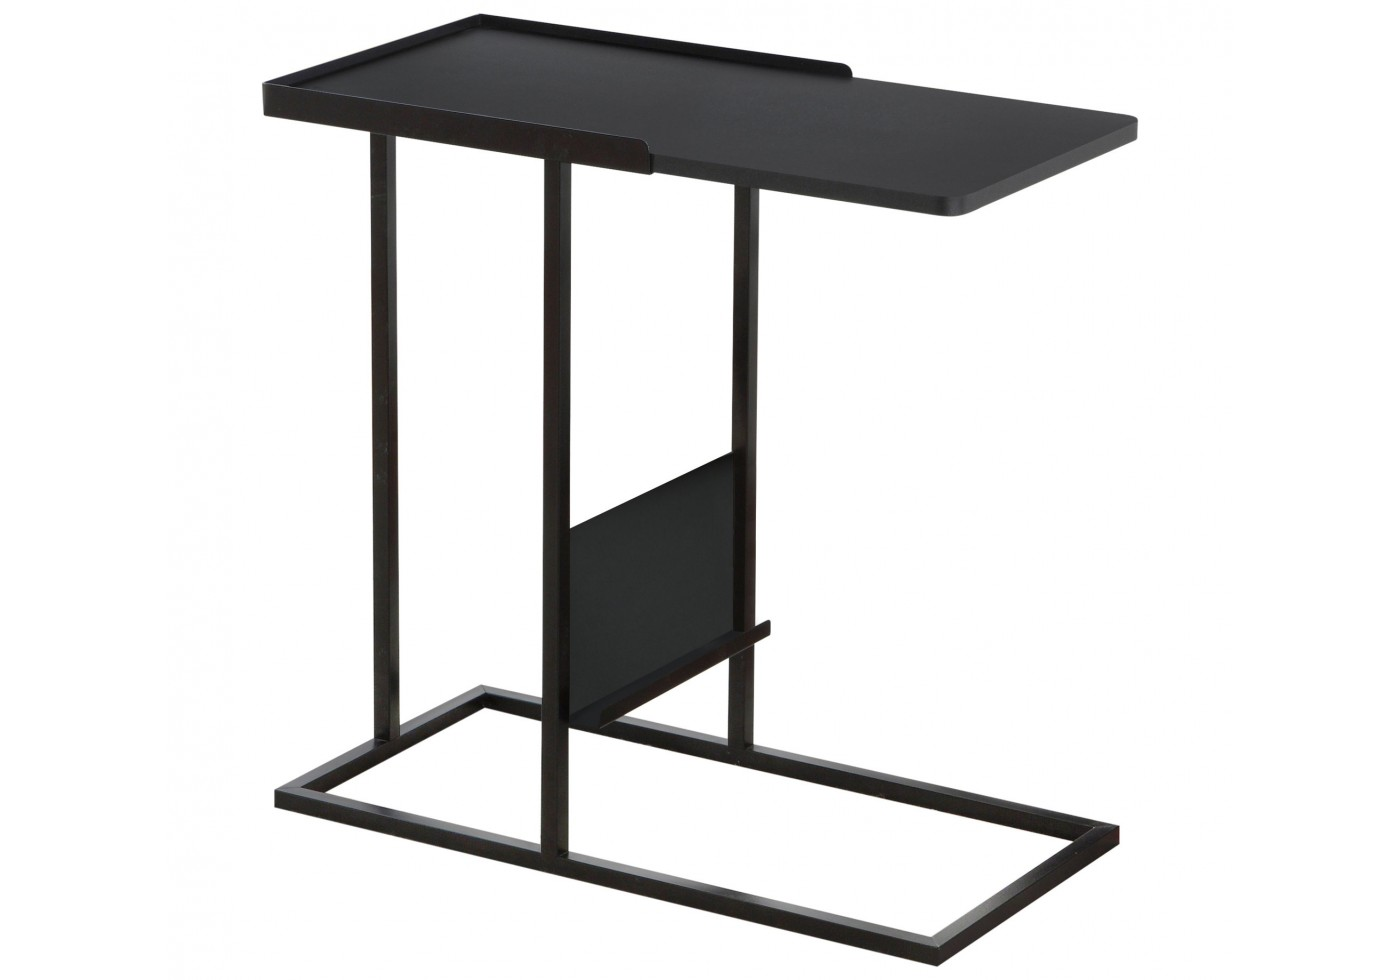 accent table black metal with magazine rack holder used end tables hammered drum coffee small white ceramic side modern couch building sliding barn door corner telephone stand